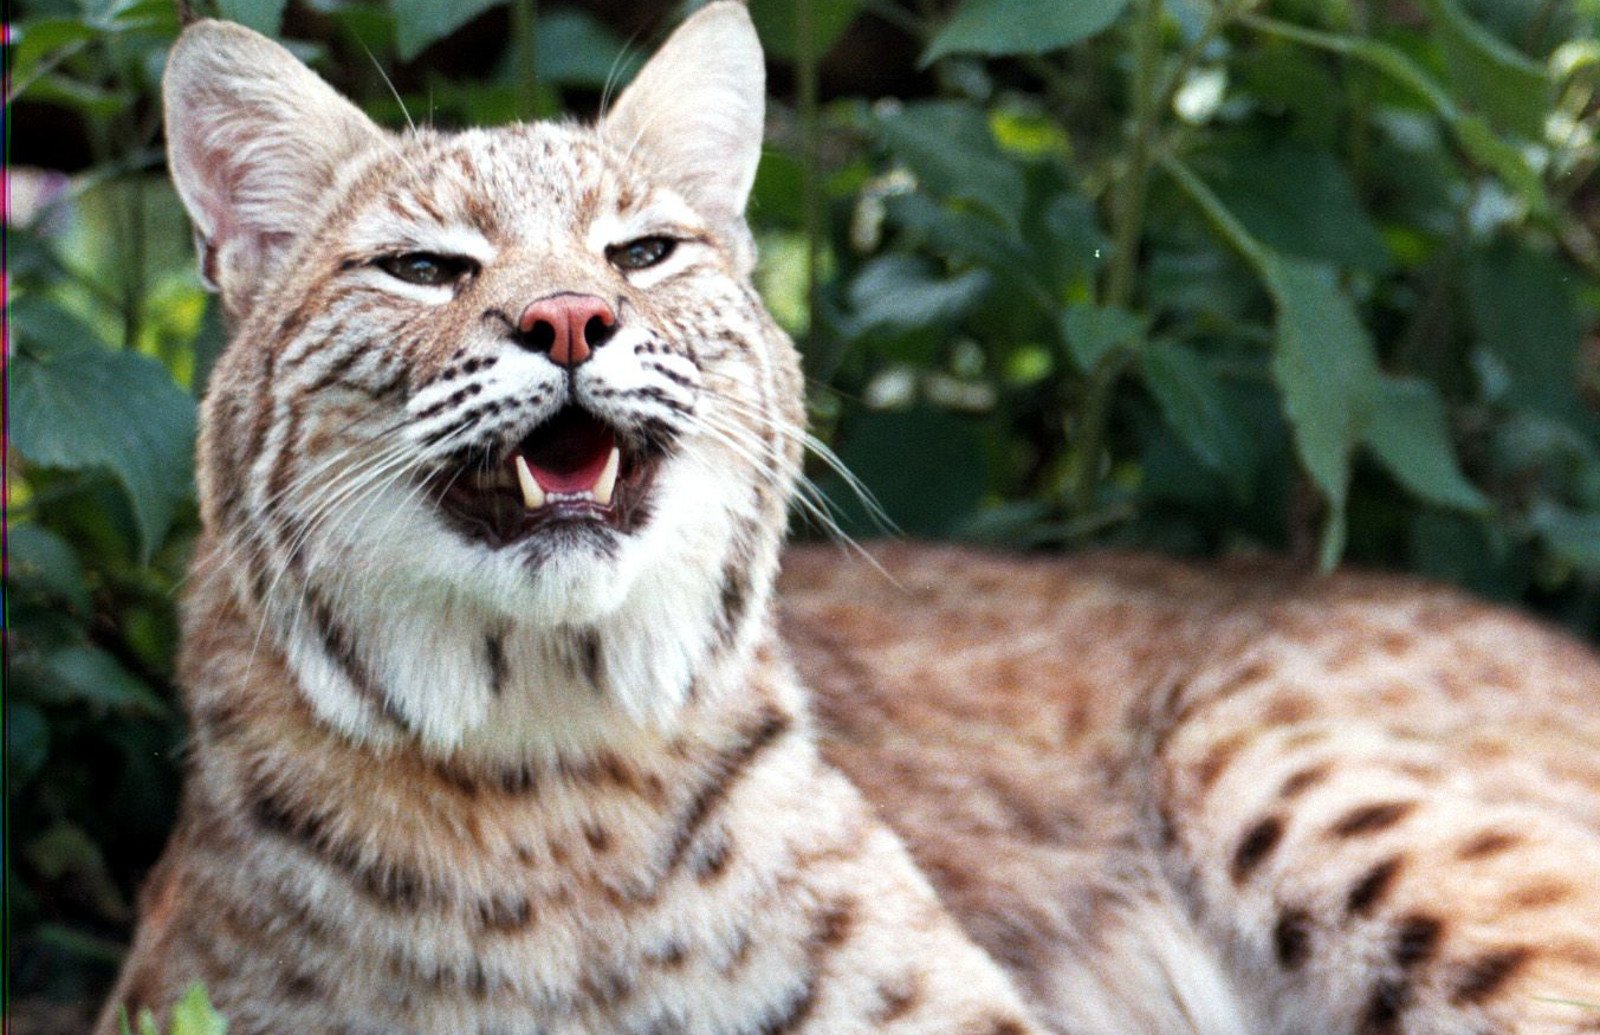 Big Cats Gone Wild! Our Top 10 Favorite Big Cat Rescue Videos